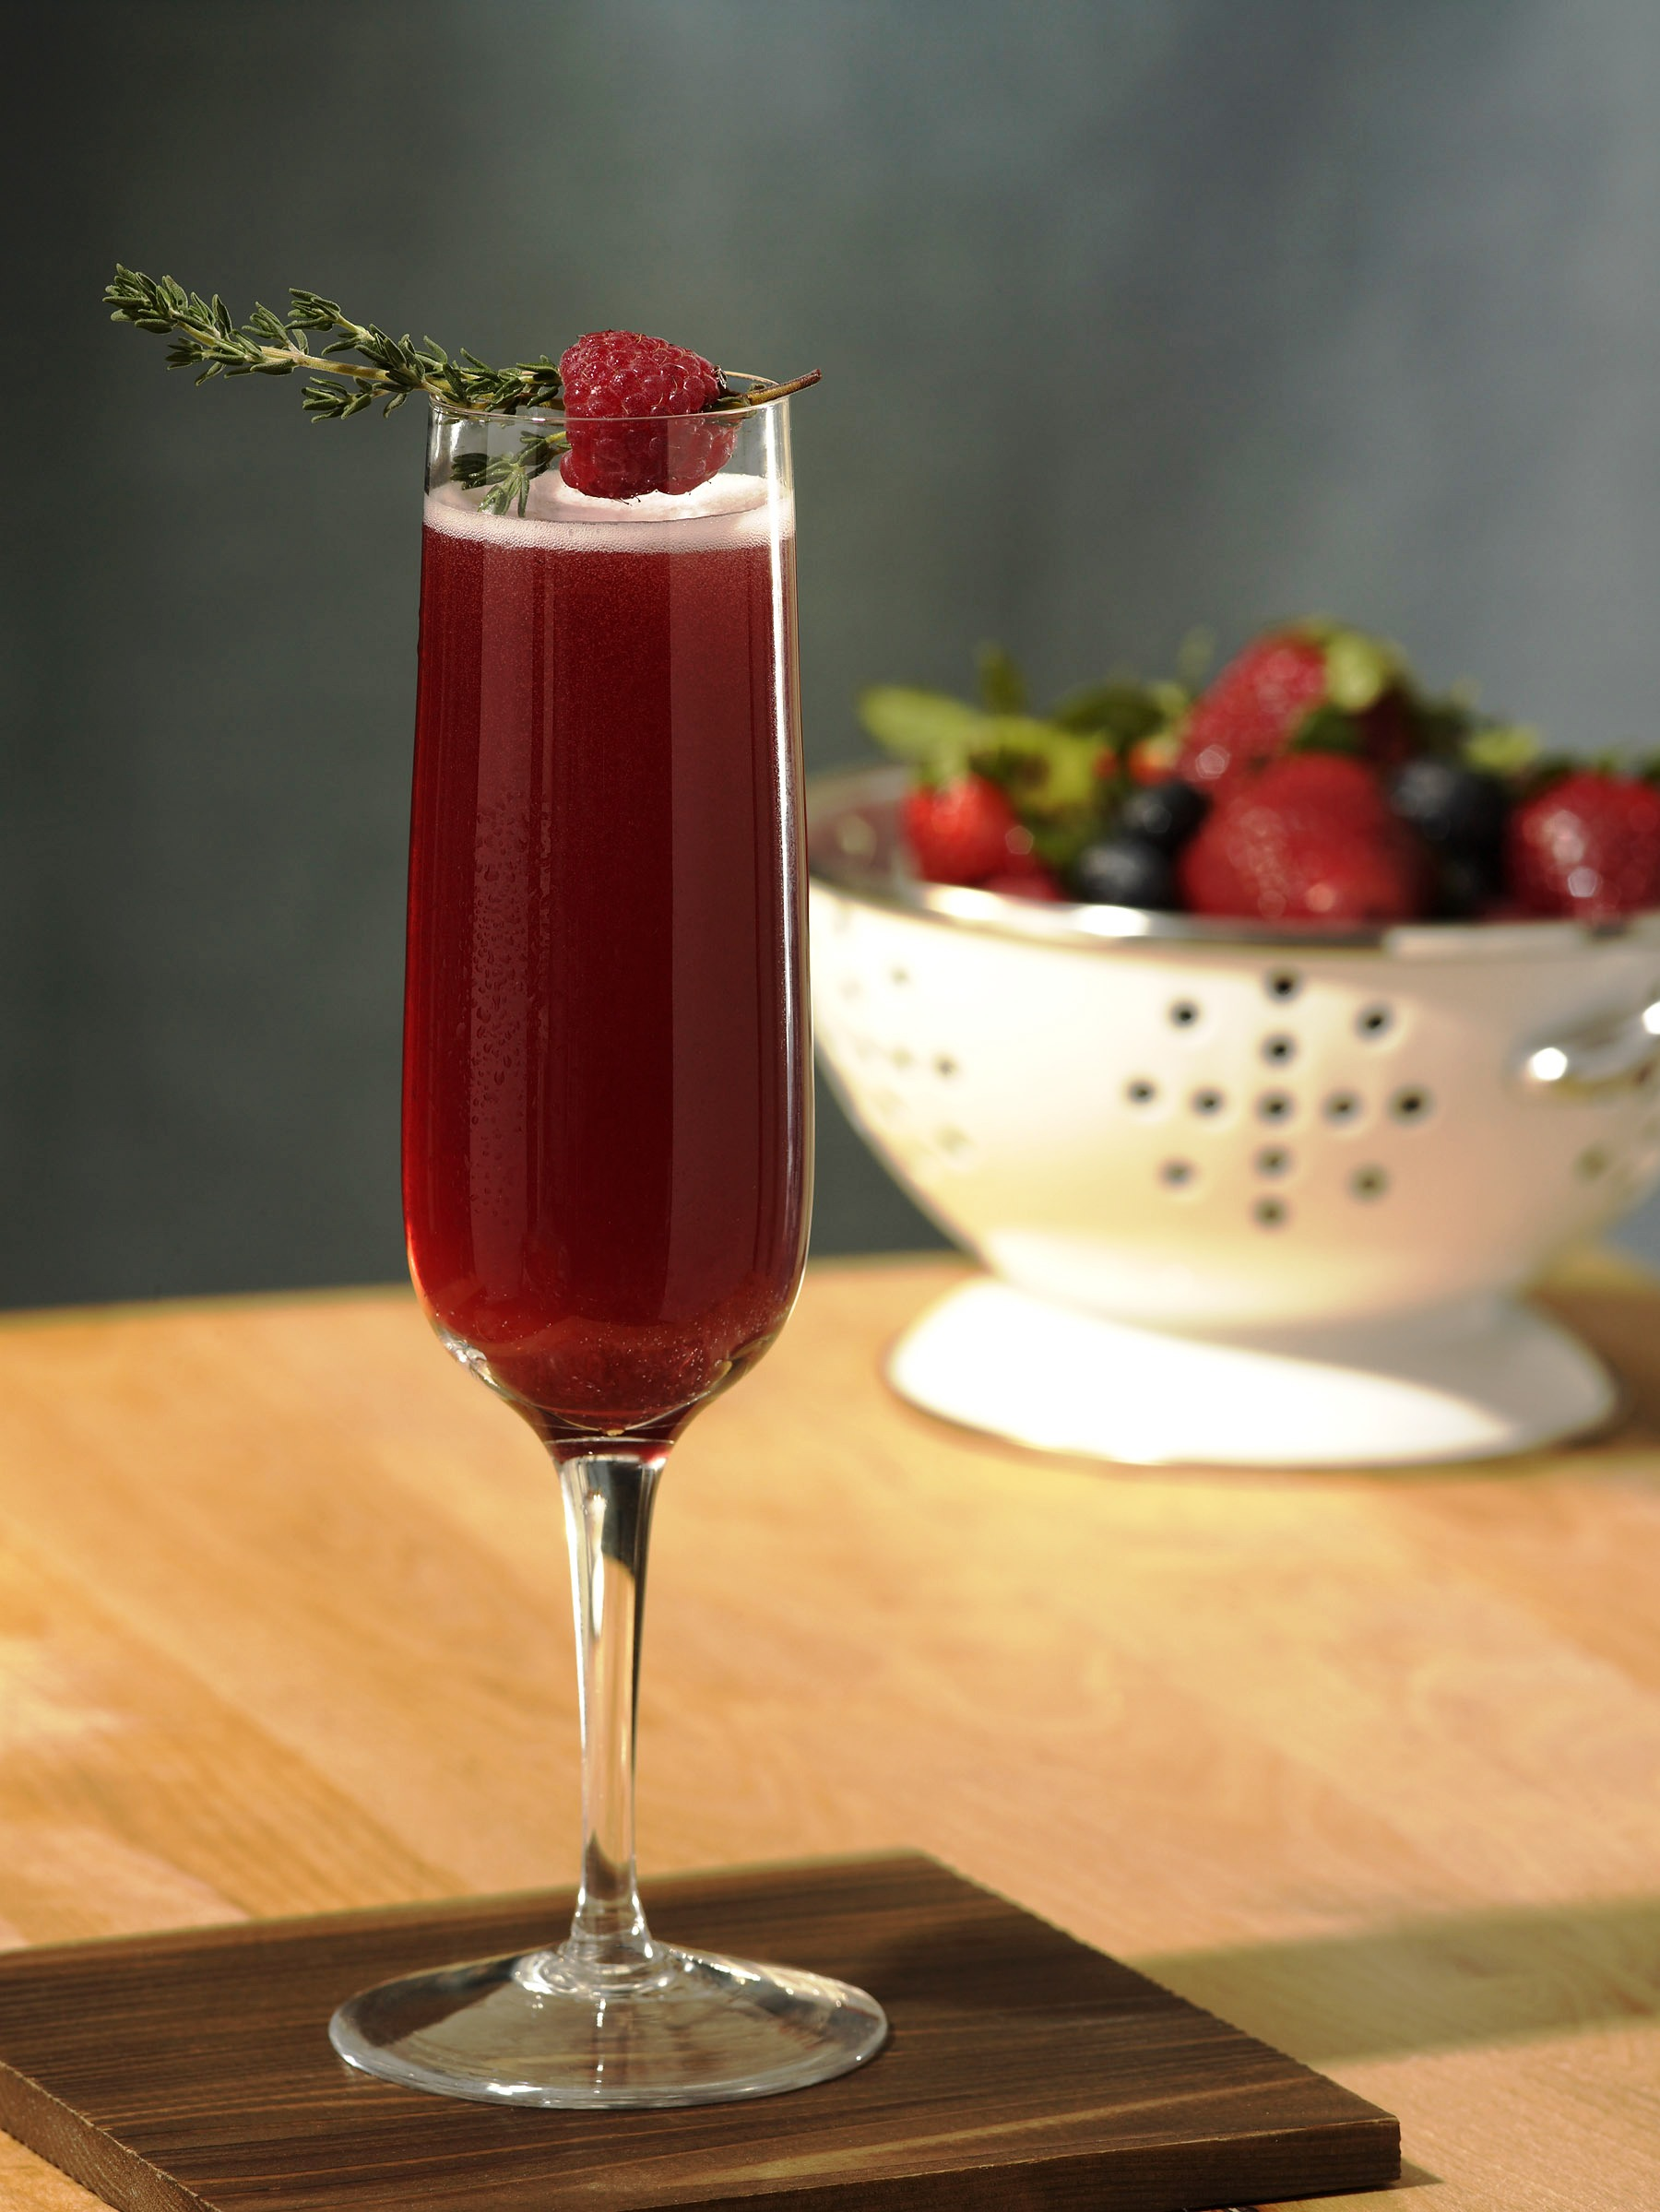 jingle bellini